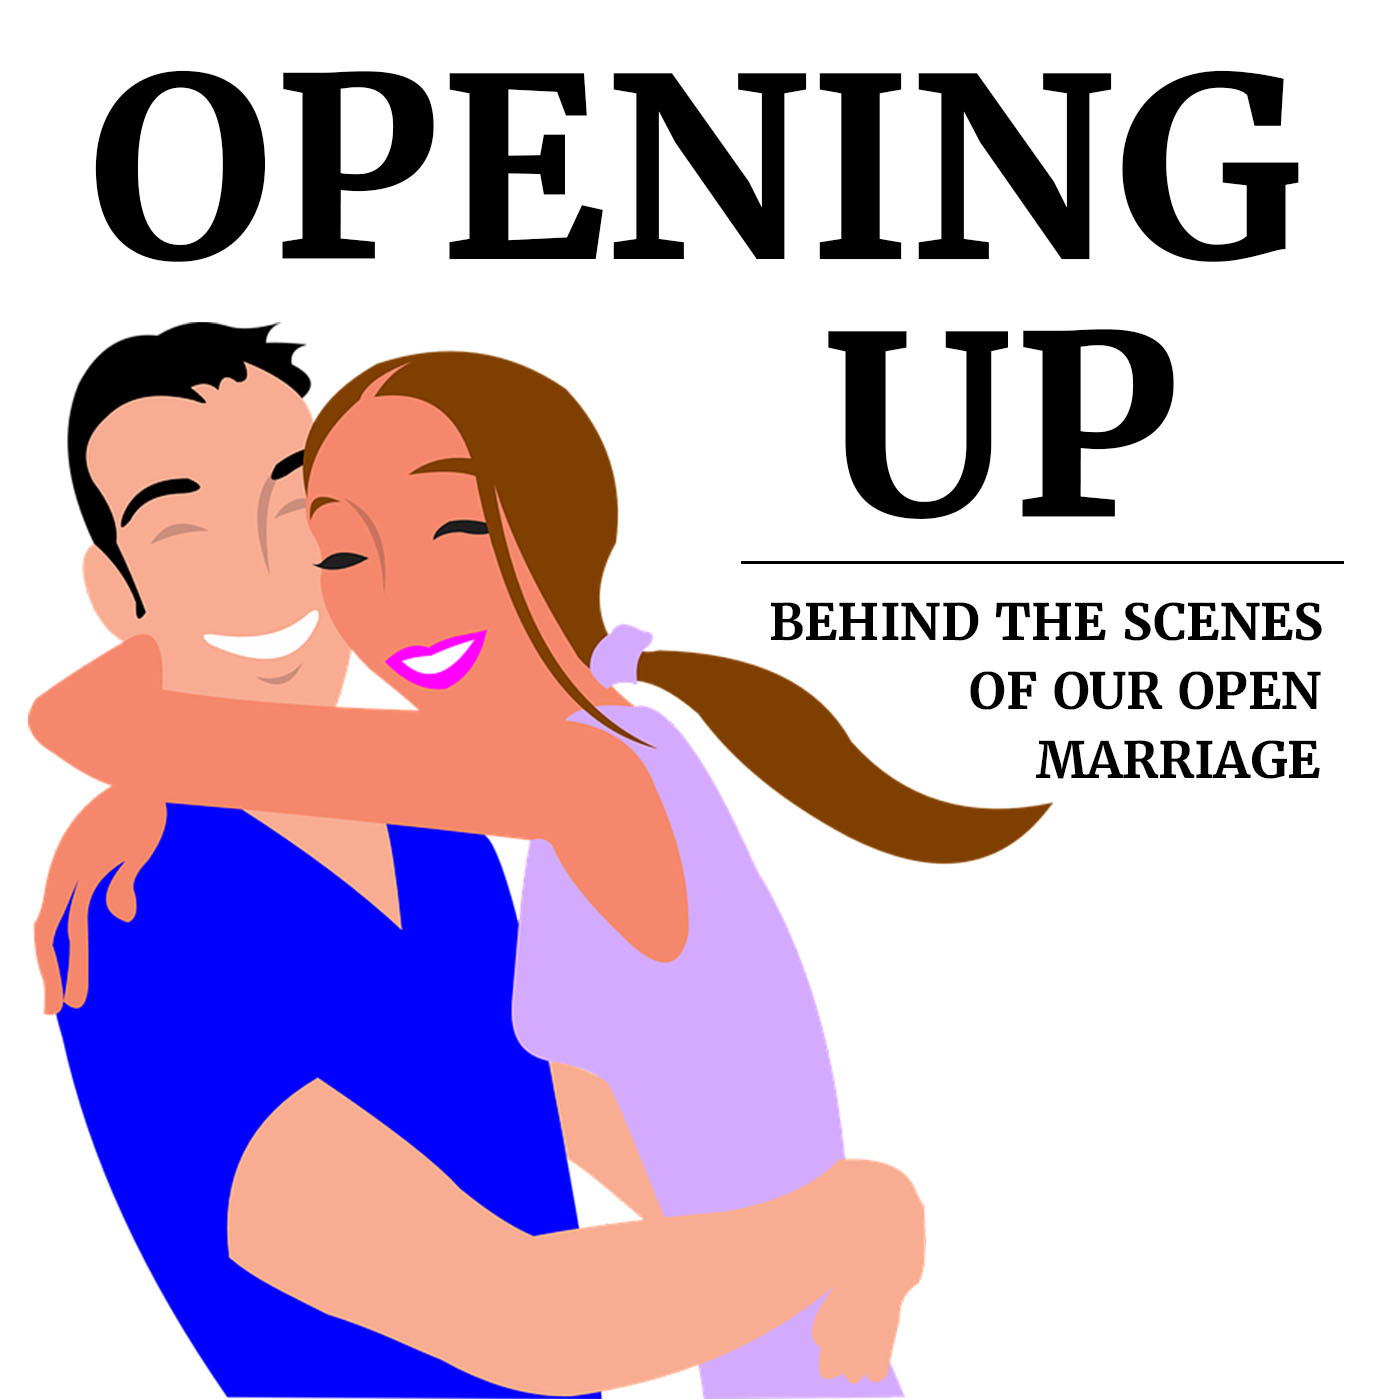 opening up behind the scenes of our open marriage by nikki john